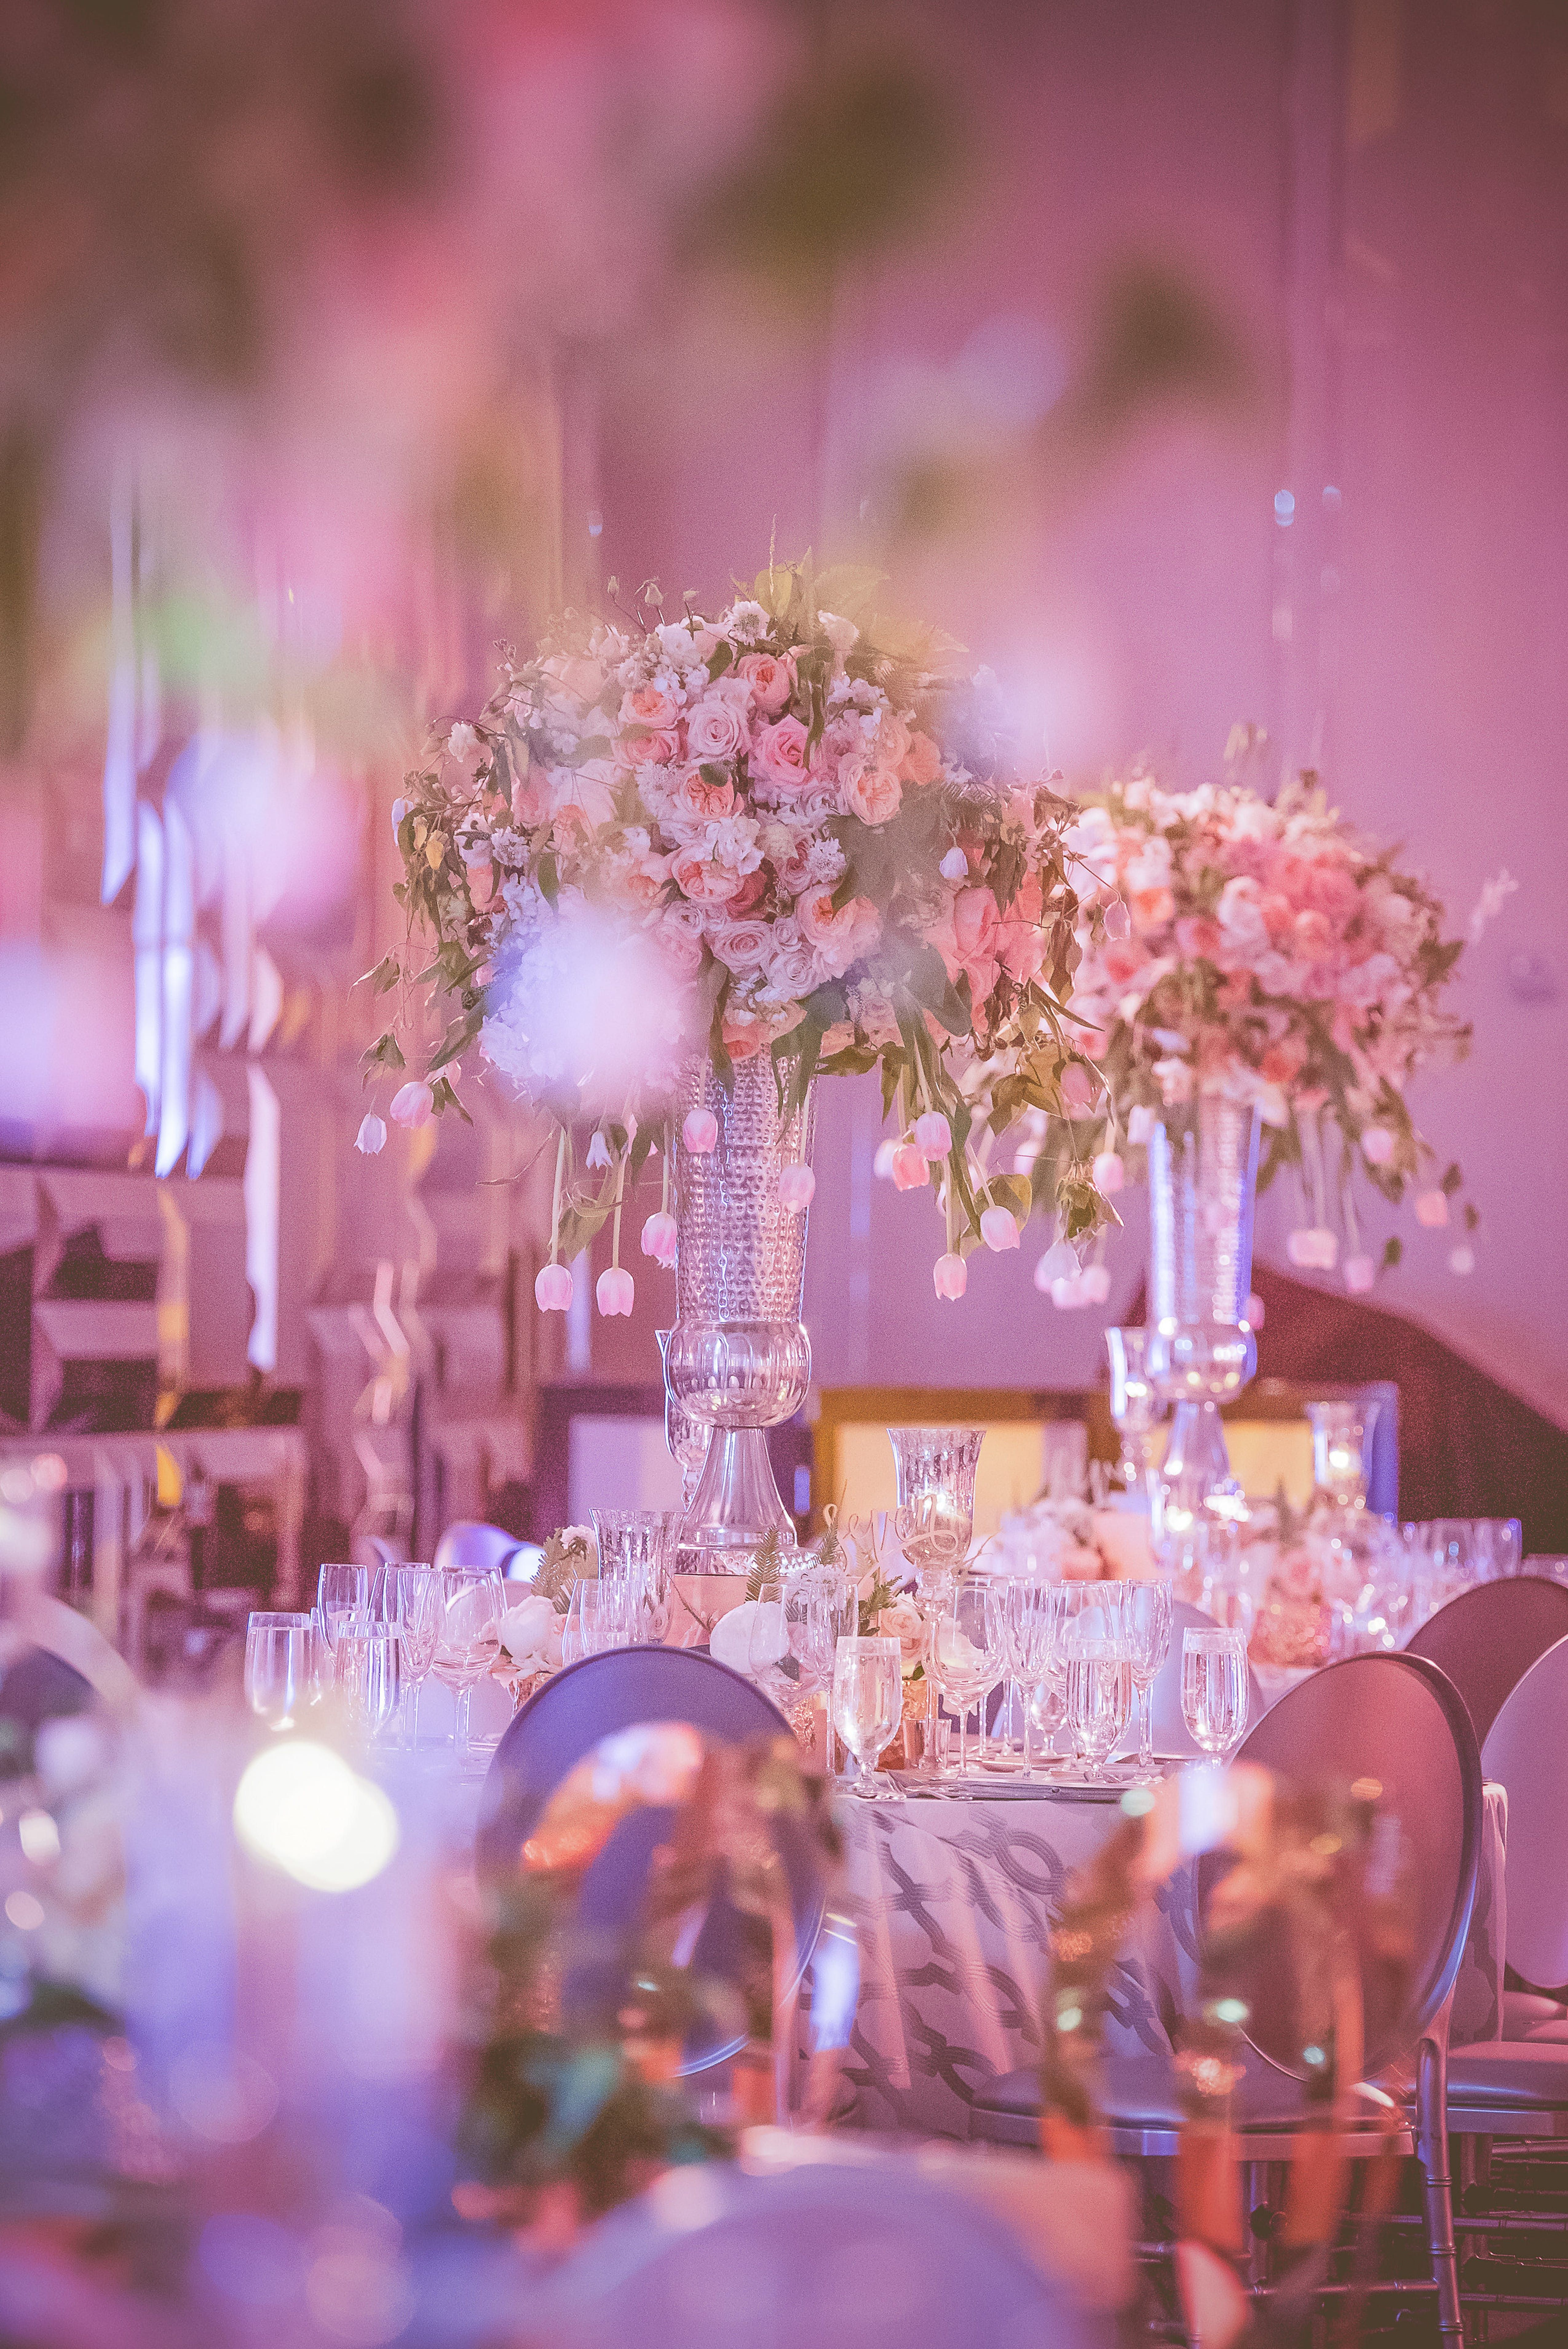 Romantic St Regis Bal Harbour Wedding Party Rentals And Decor By Gilded Group Decor Miami Event De Wedding Decorations Event Decor Floral Wedding